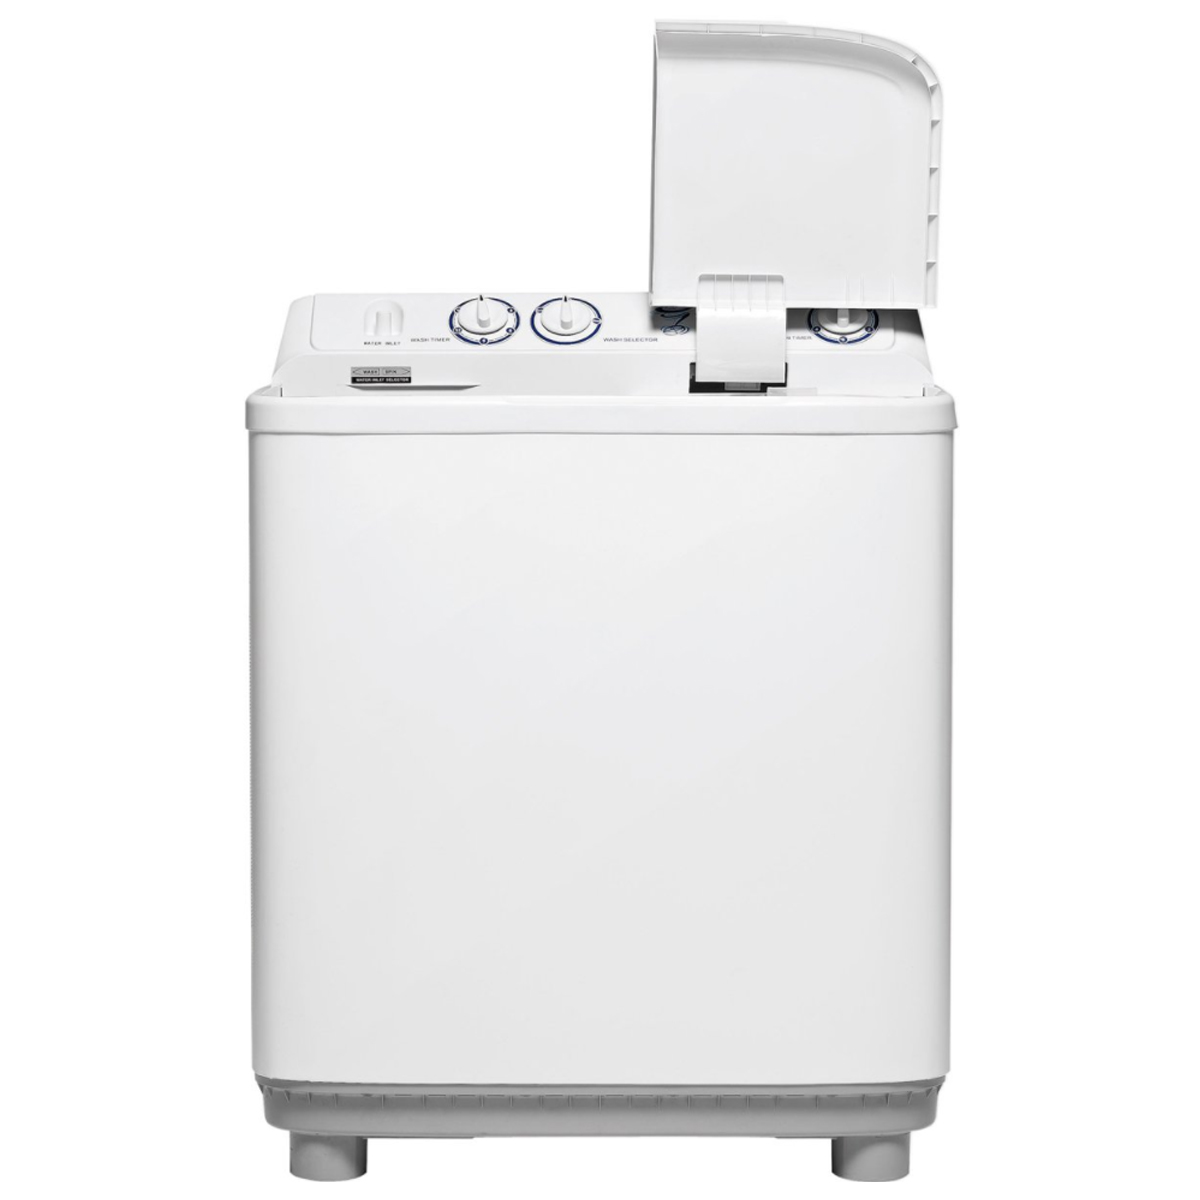 haier washing machine haier xpb60 287s 6kg top load tub washing machine 12985